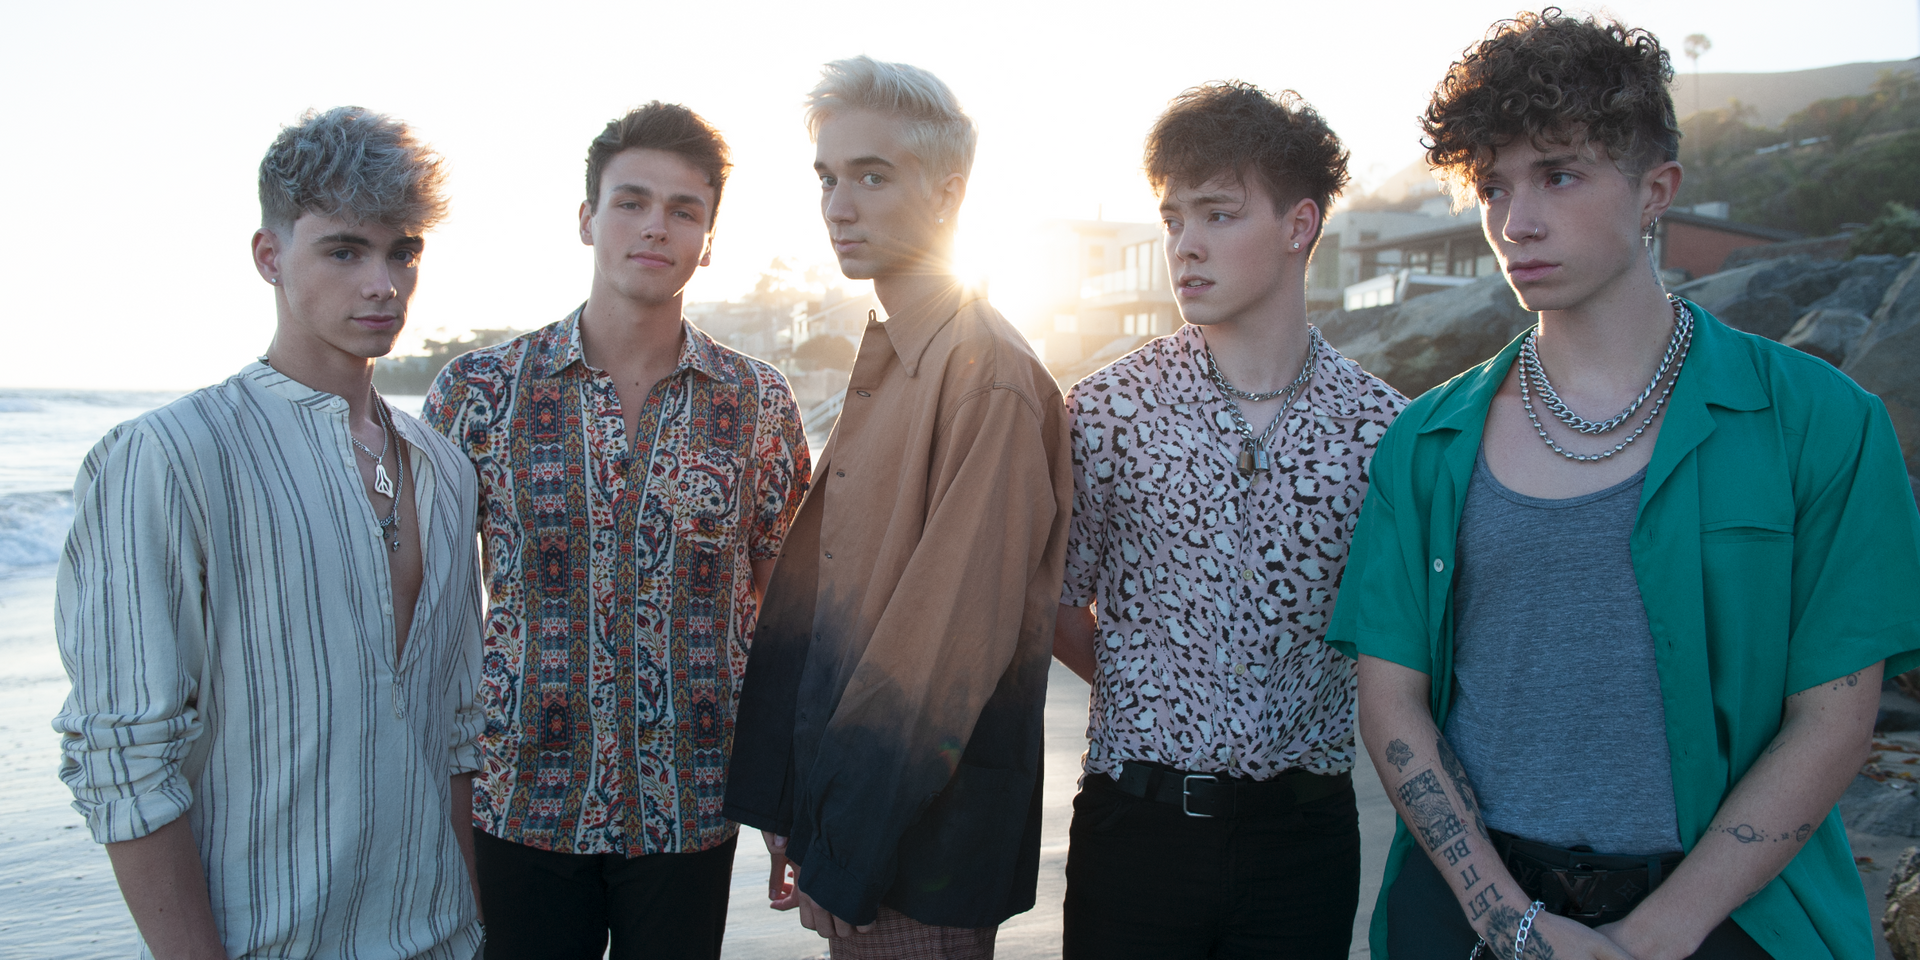 """""""The guys and I are slightly different from most boy bands that have been out there"""": An interview with Jack Avery of Why Don't We"""